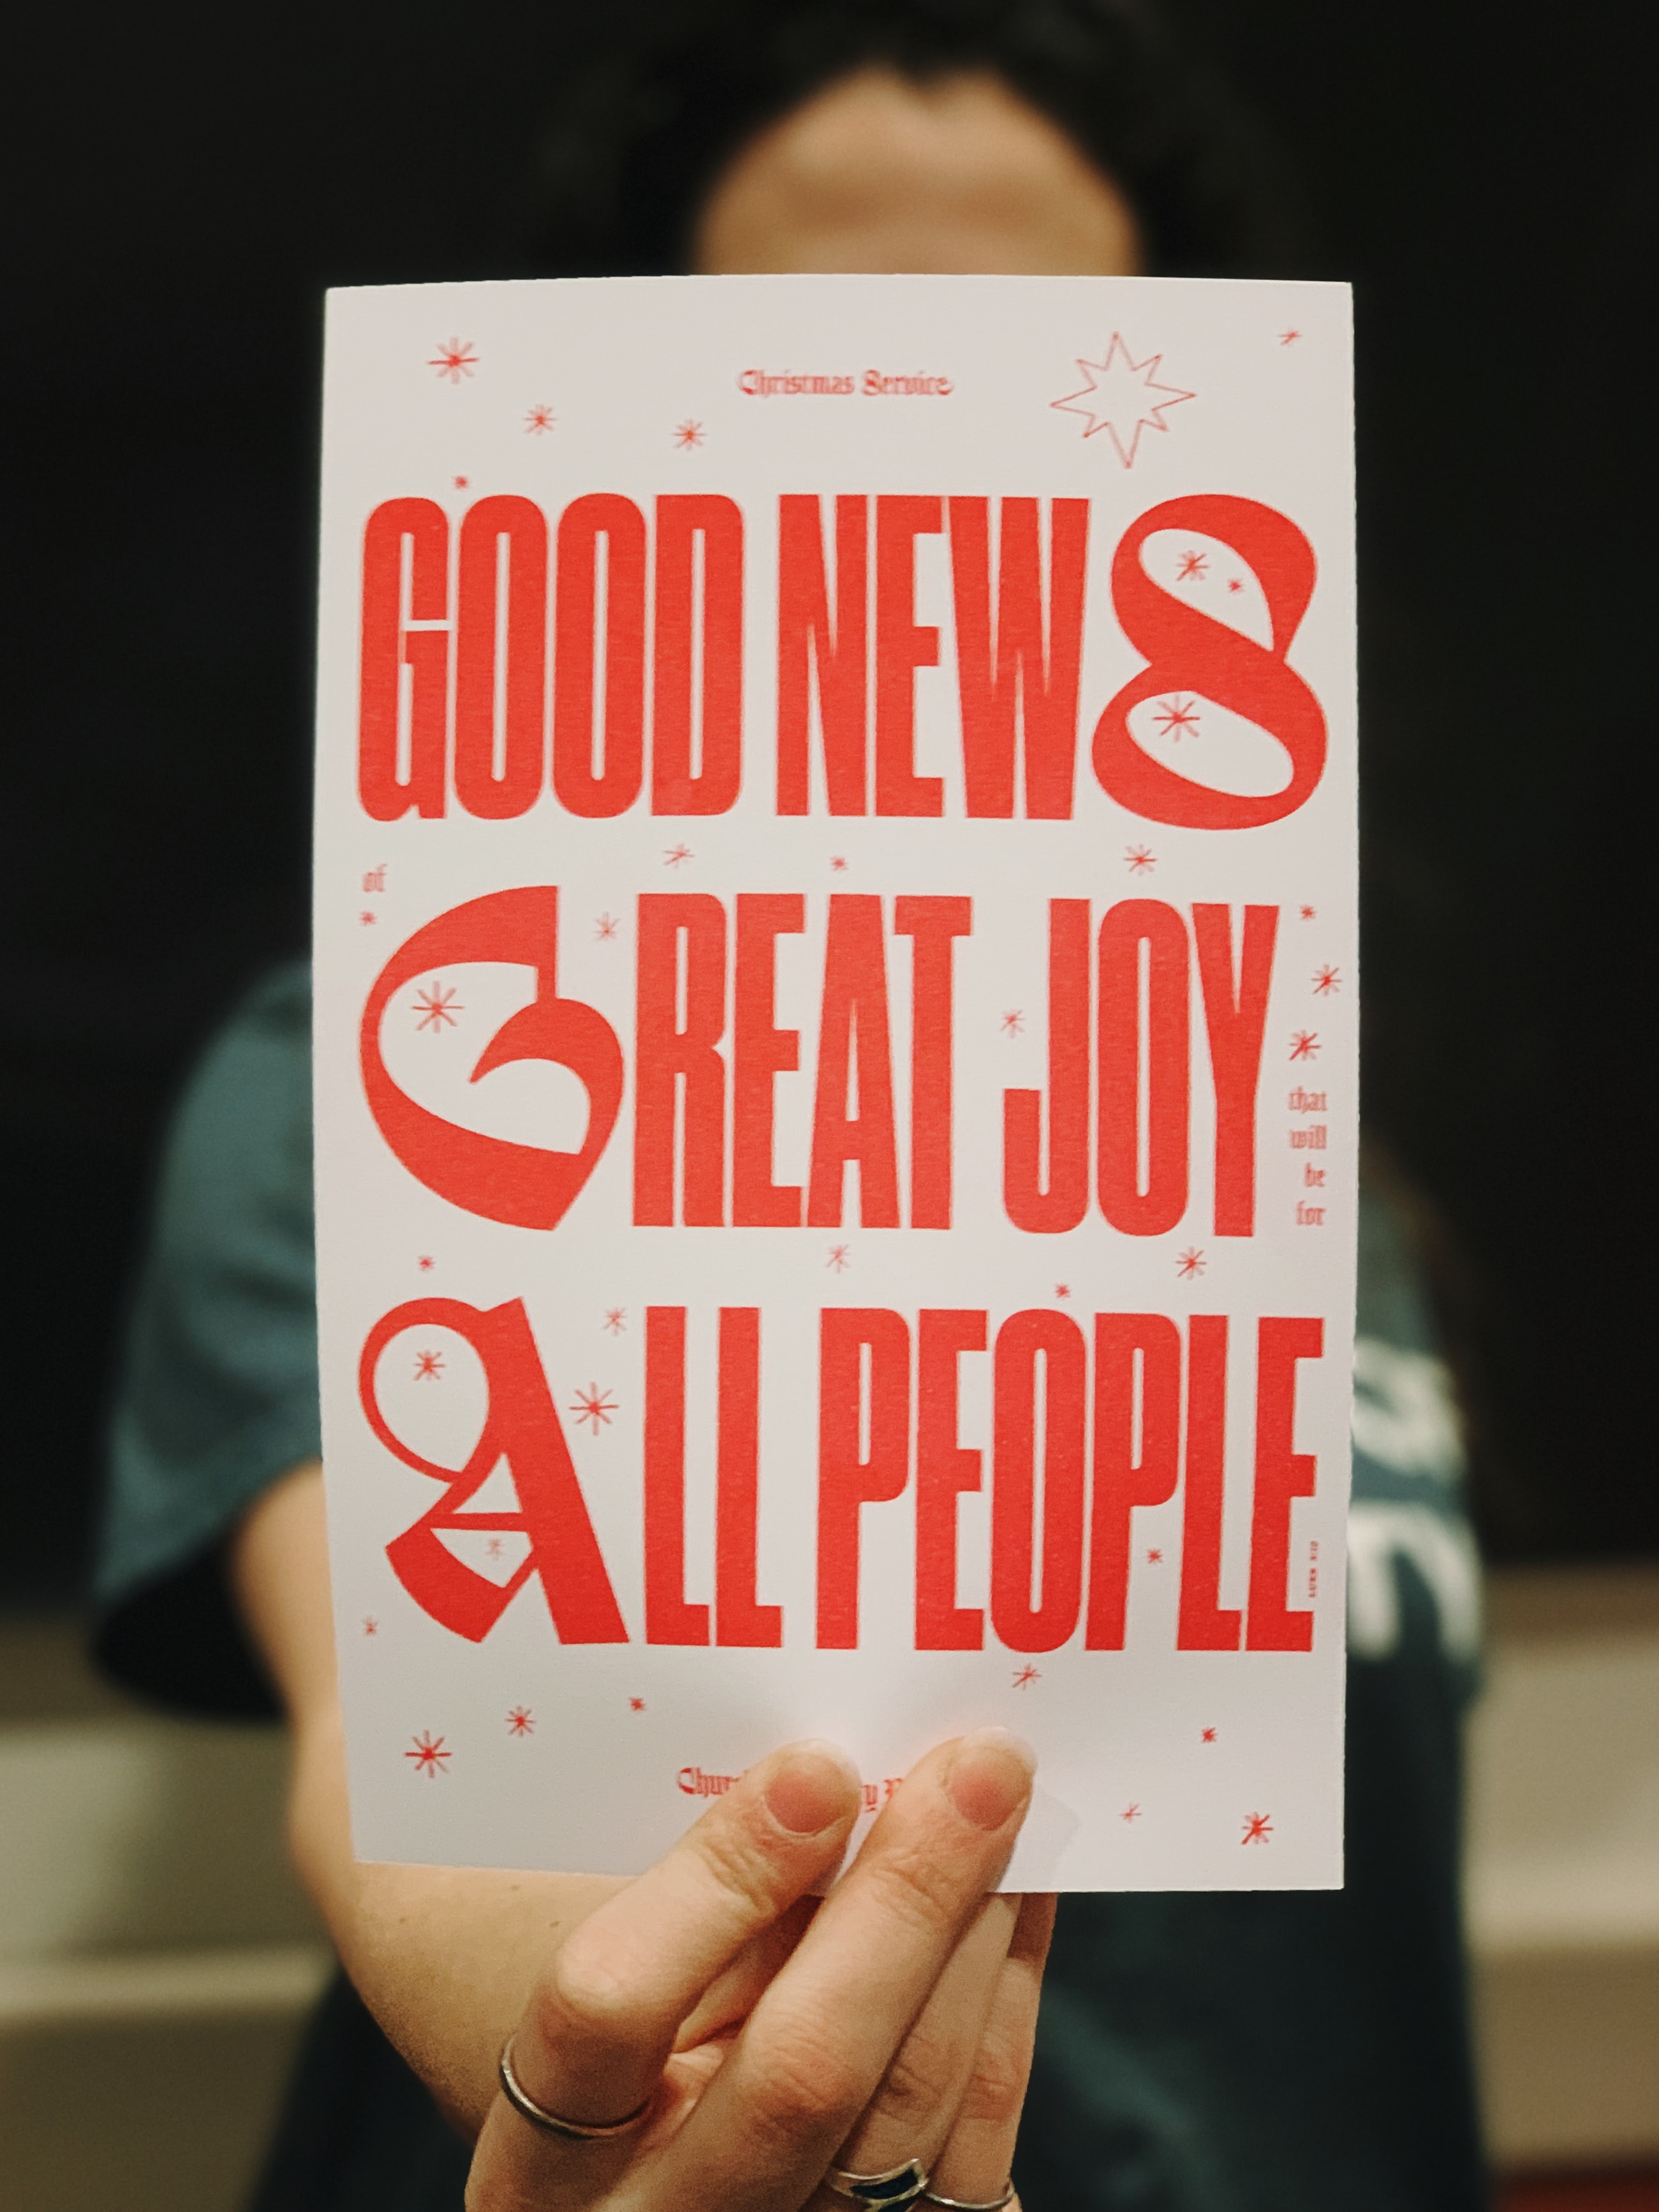 Good News Great Joy All People poster